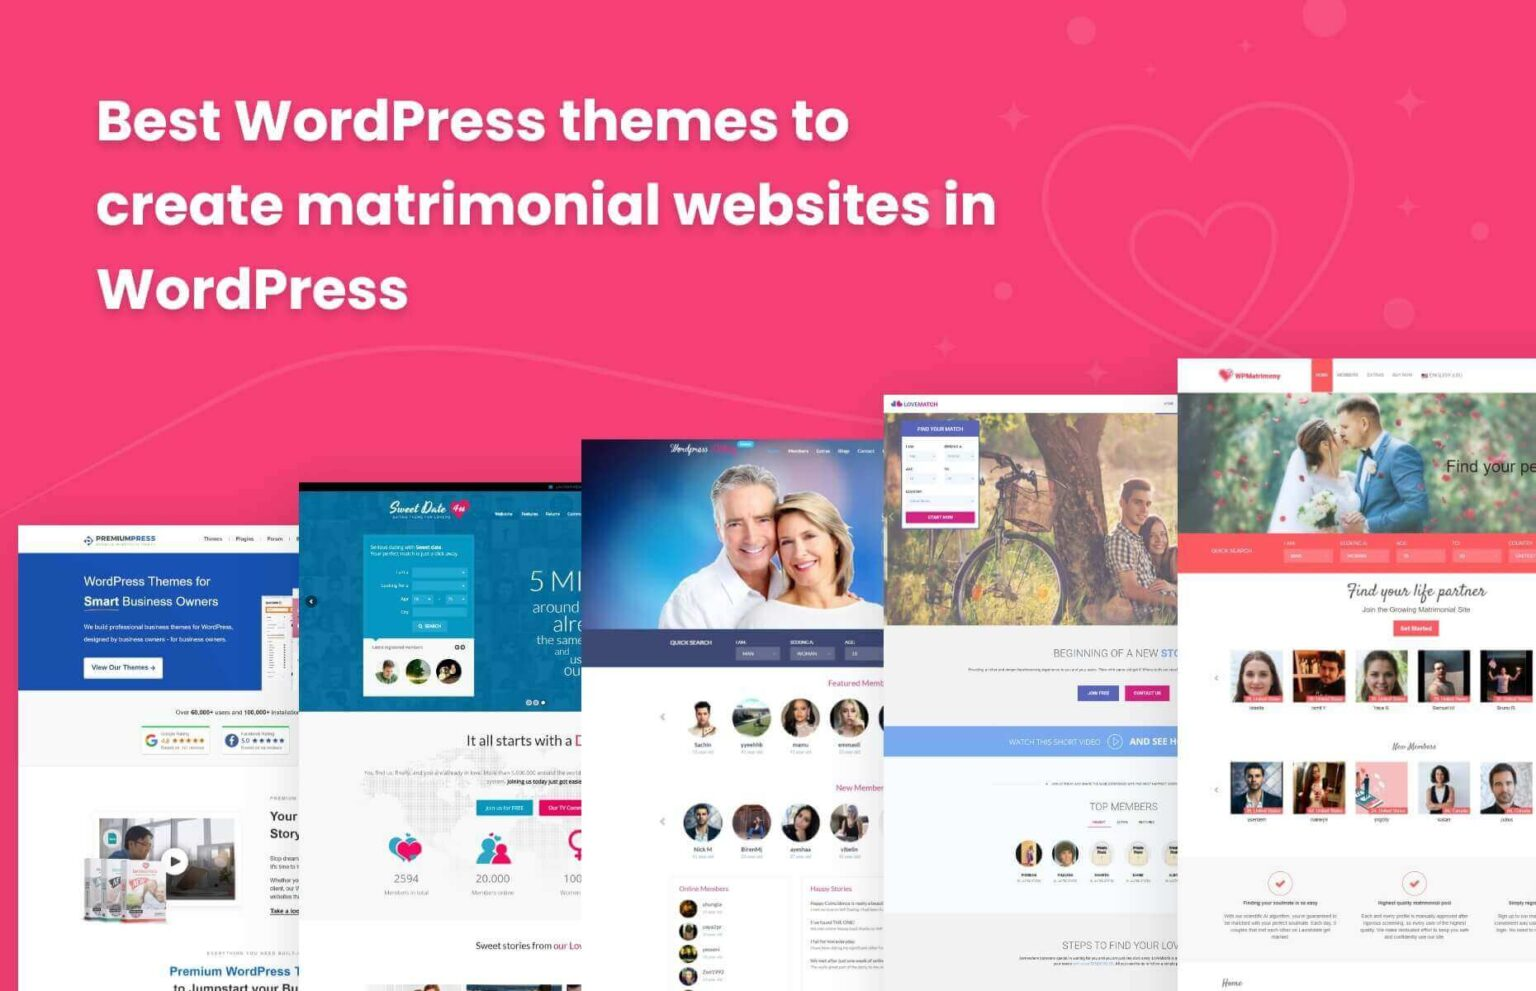 Choose the best WordPress theme for your matrimonial website.